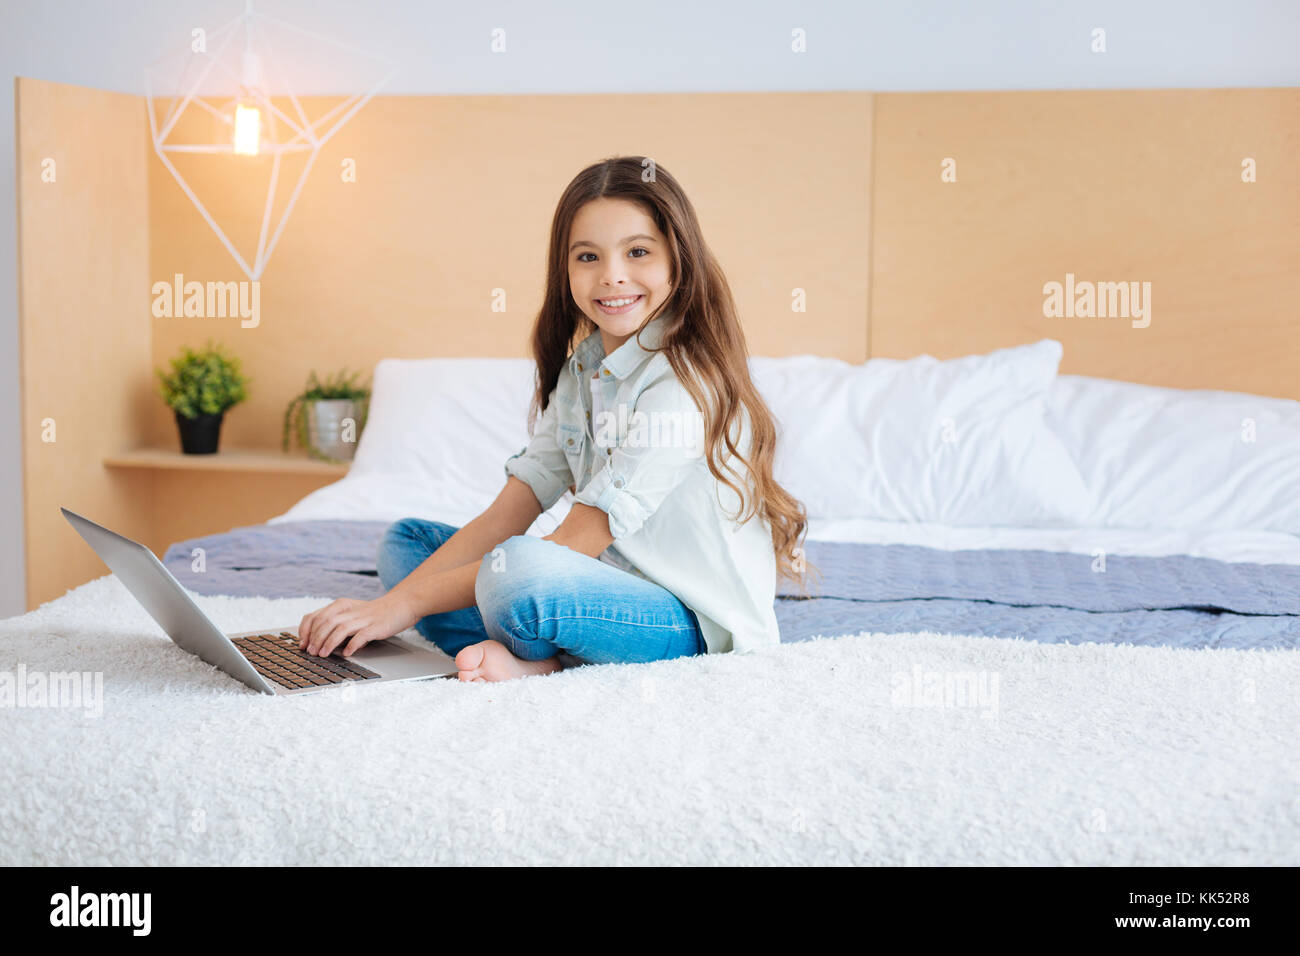 Time spending. Cheerful confident optimistic girl spending her leisure with a laptop  recreating in the bedroom - Stock Image